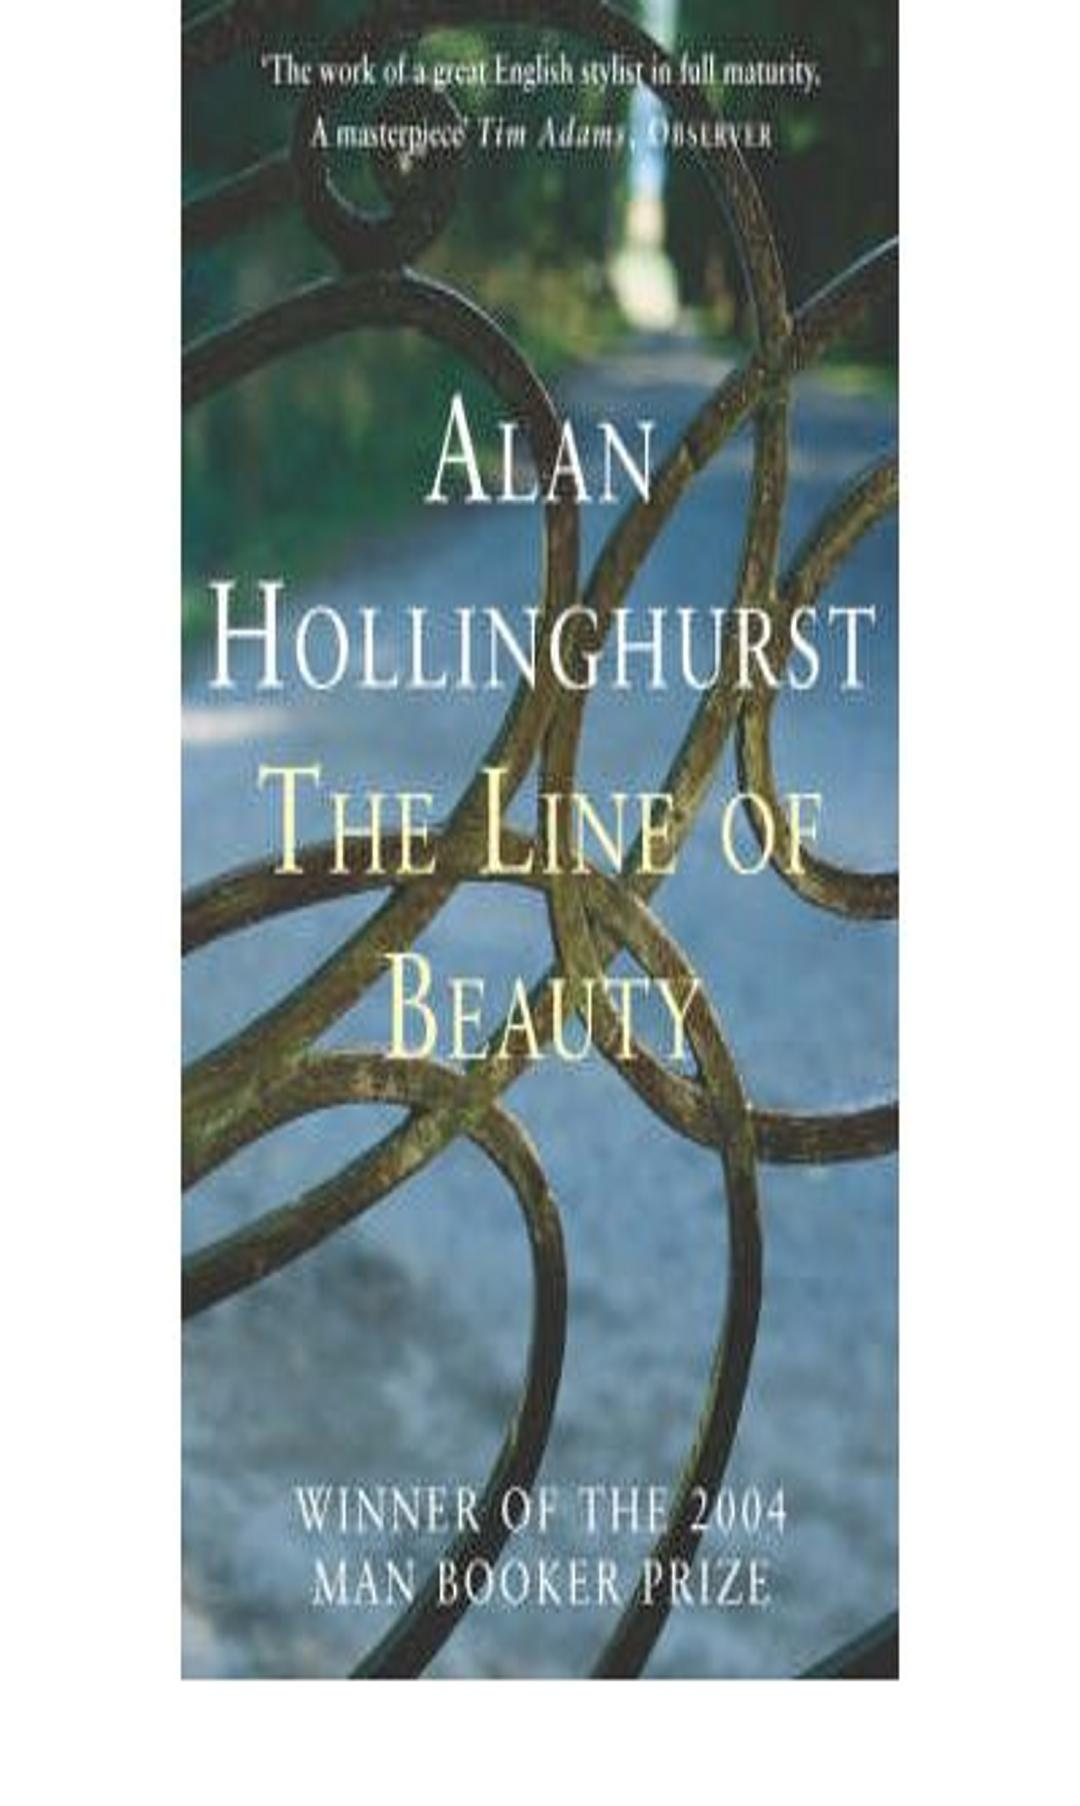 LINE OF BEAUTY, THE - Man Booker Prize Winner 2004